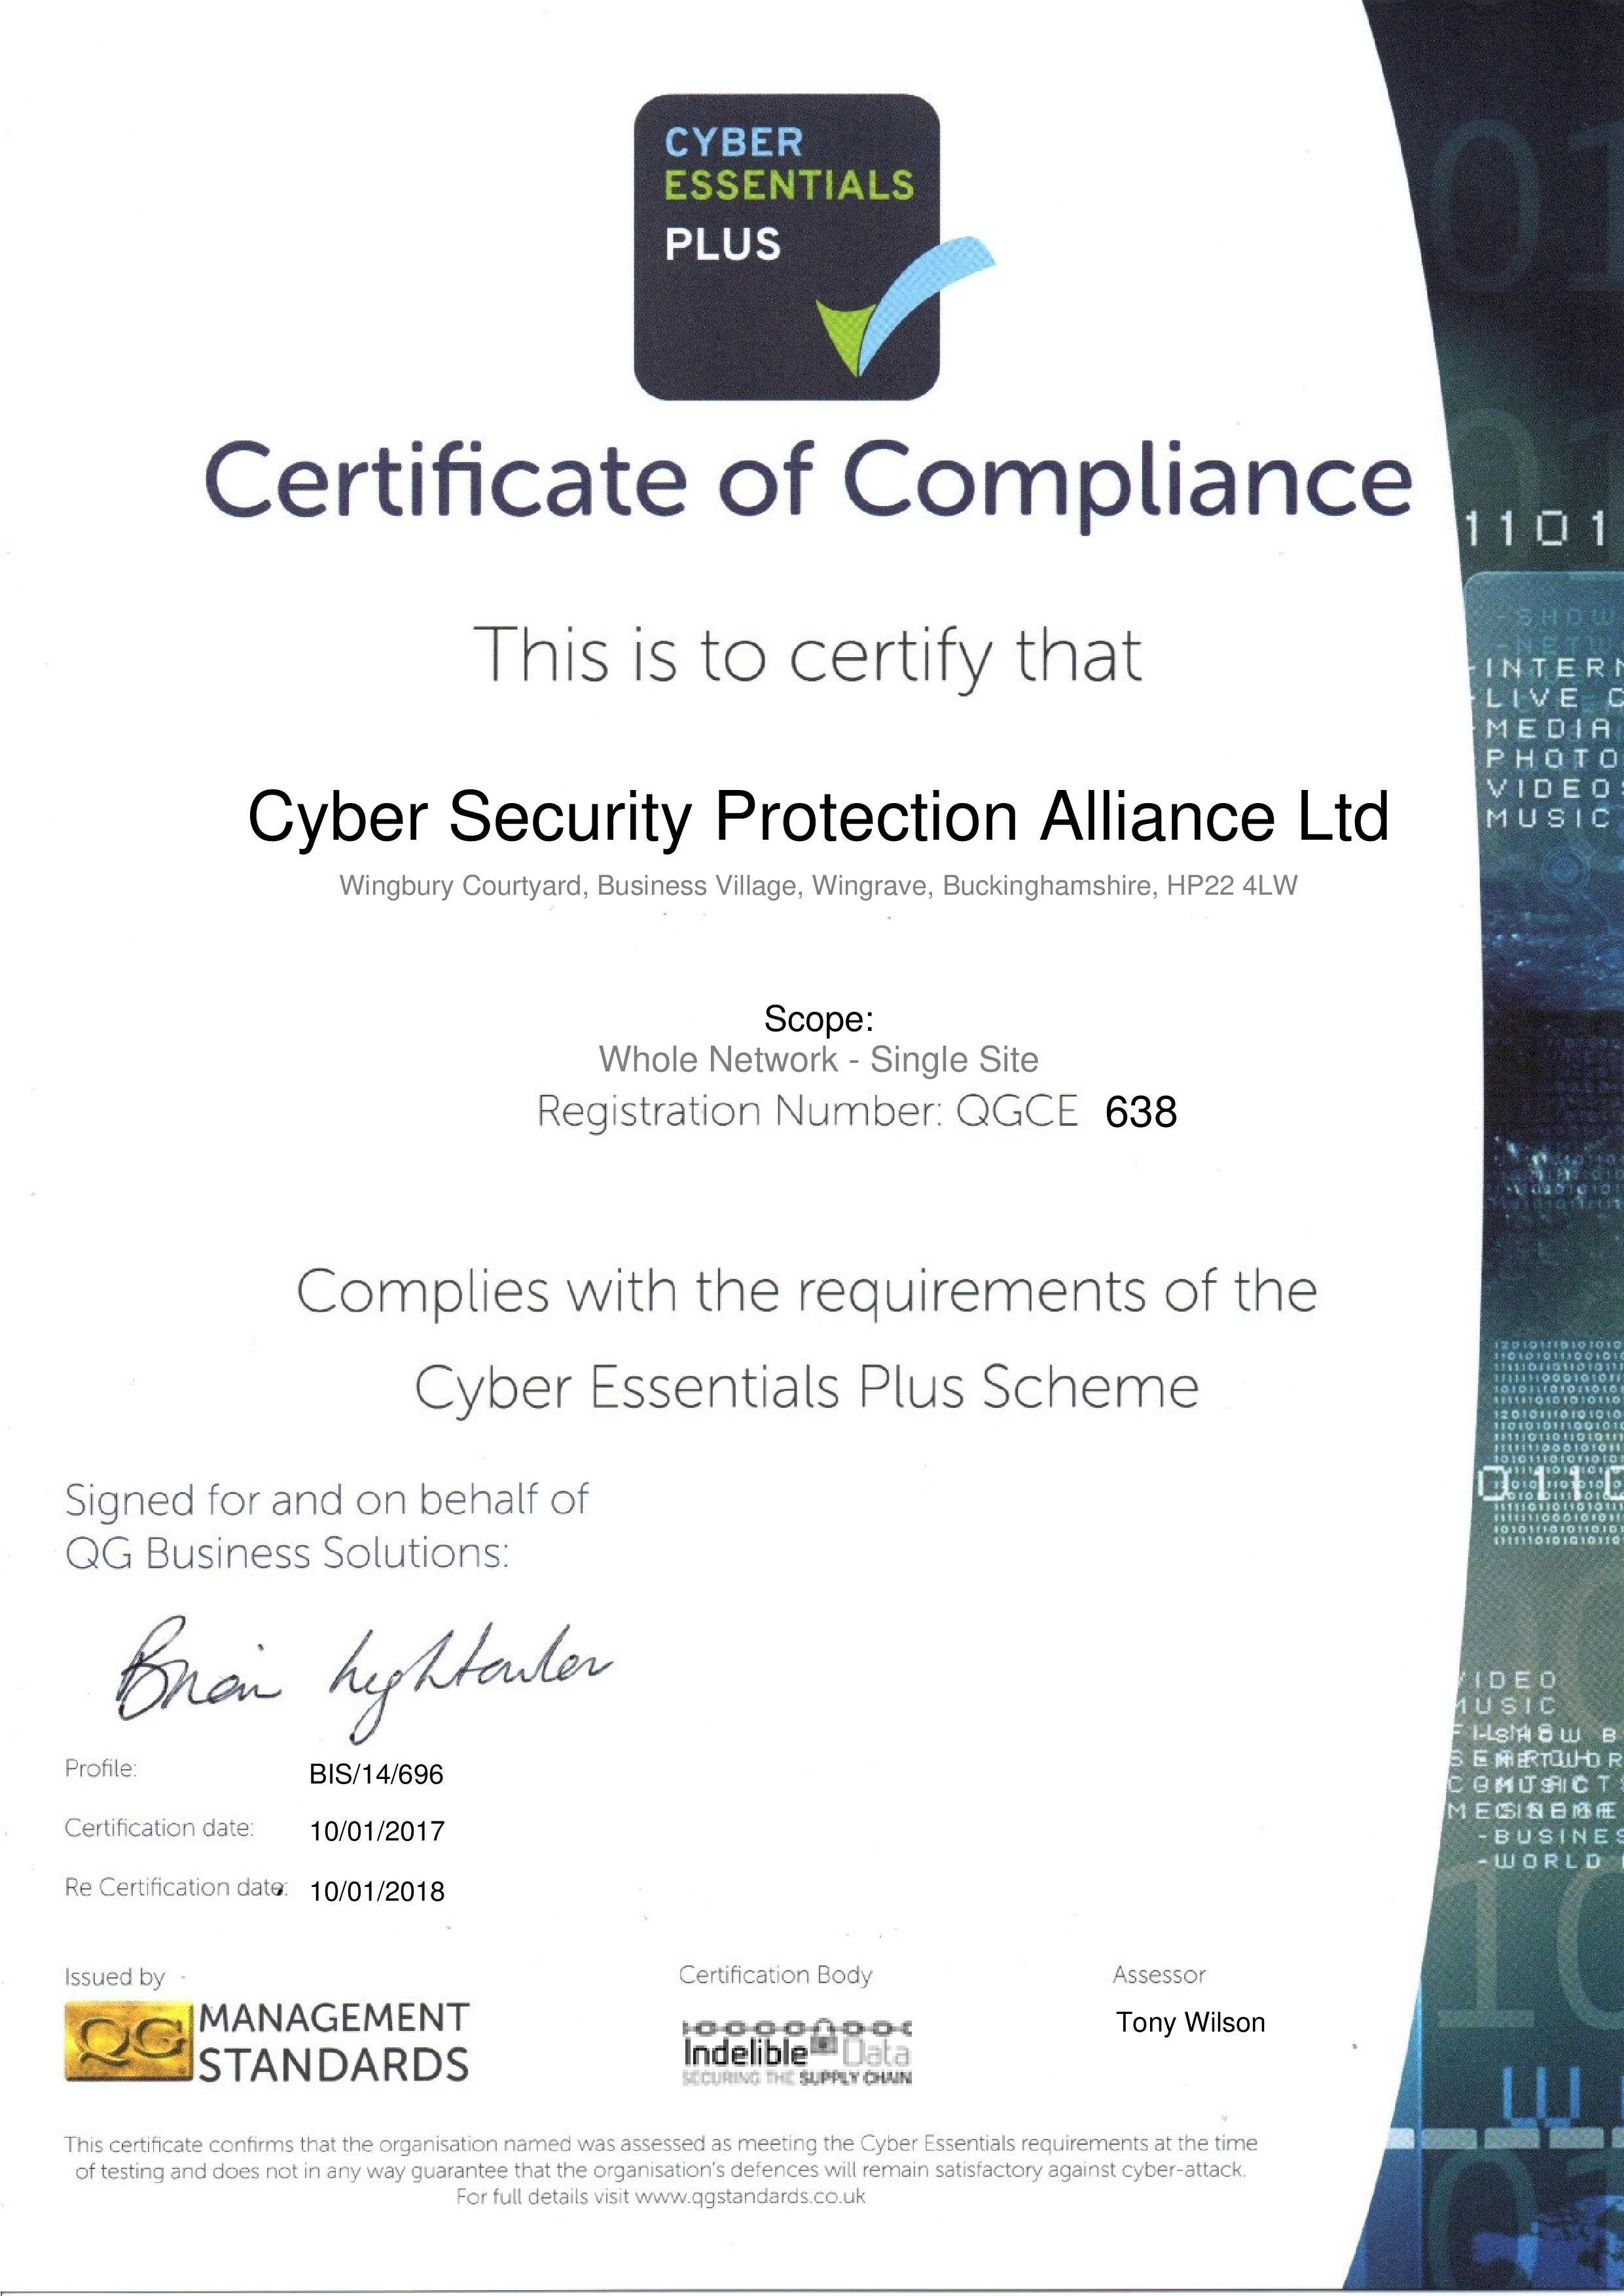 QGCE638 Cyber Security Protection Alliance Ltd